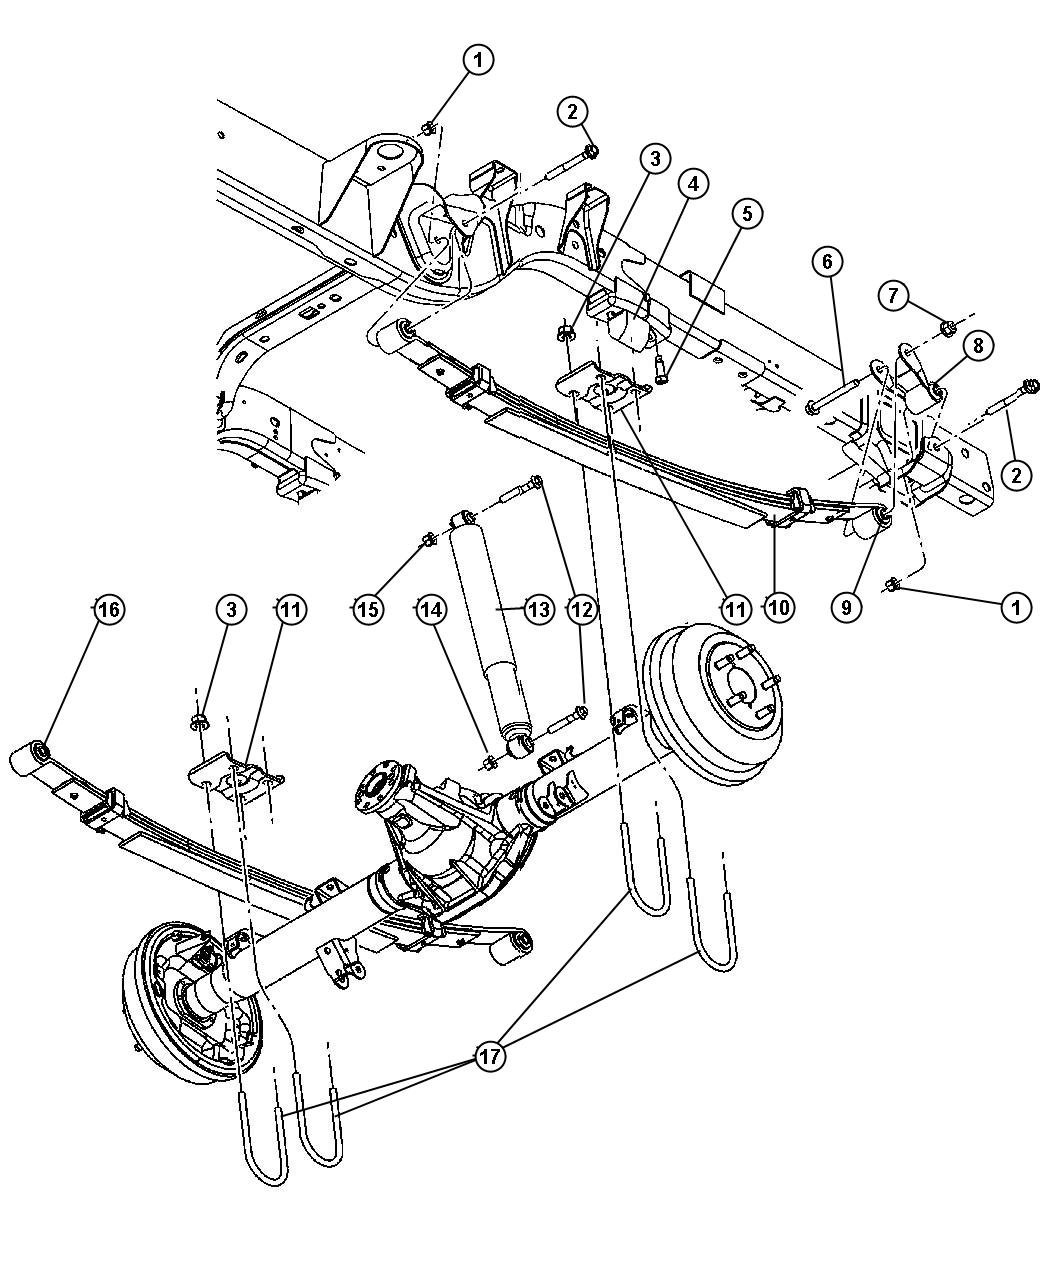 98 Dodge Dakota Front Suspension Diagram. Dodge. Auto